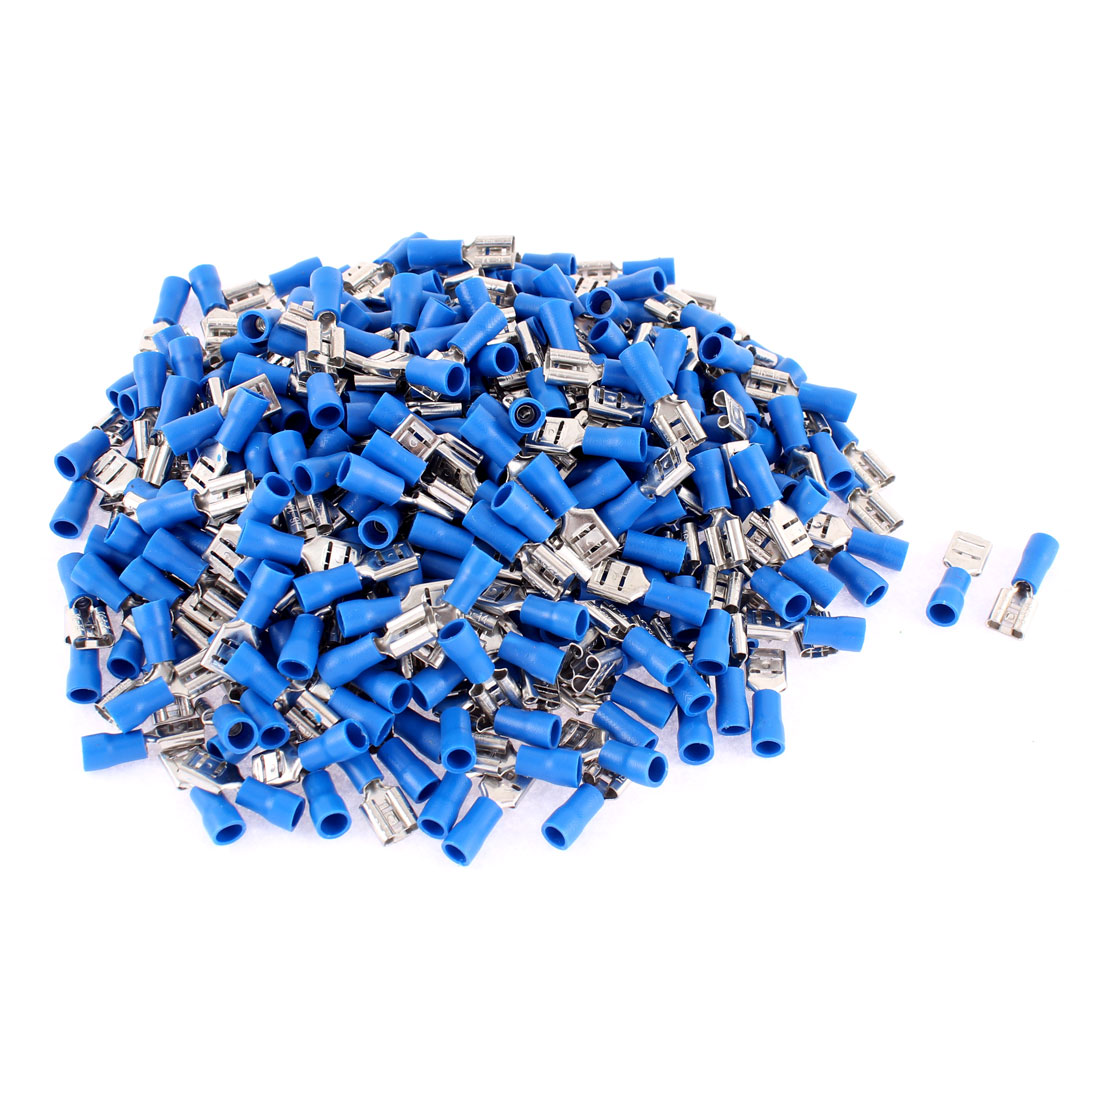 330pcs FDD2-250 AWG 16-14 1.5-2.5mm2 Wire Pre Insulated Wiring Terminal Cable Connector Blue